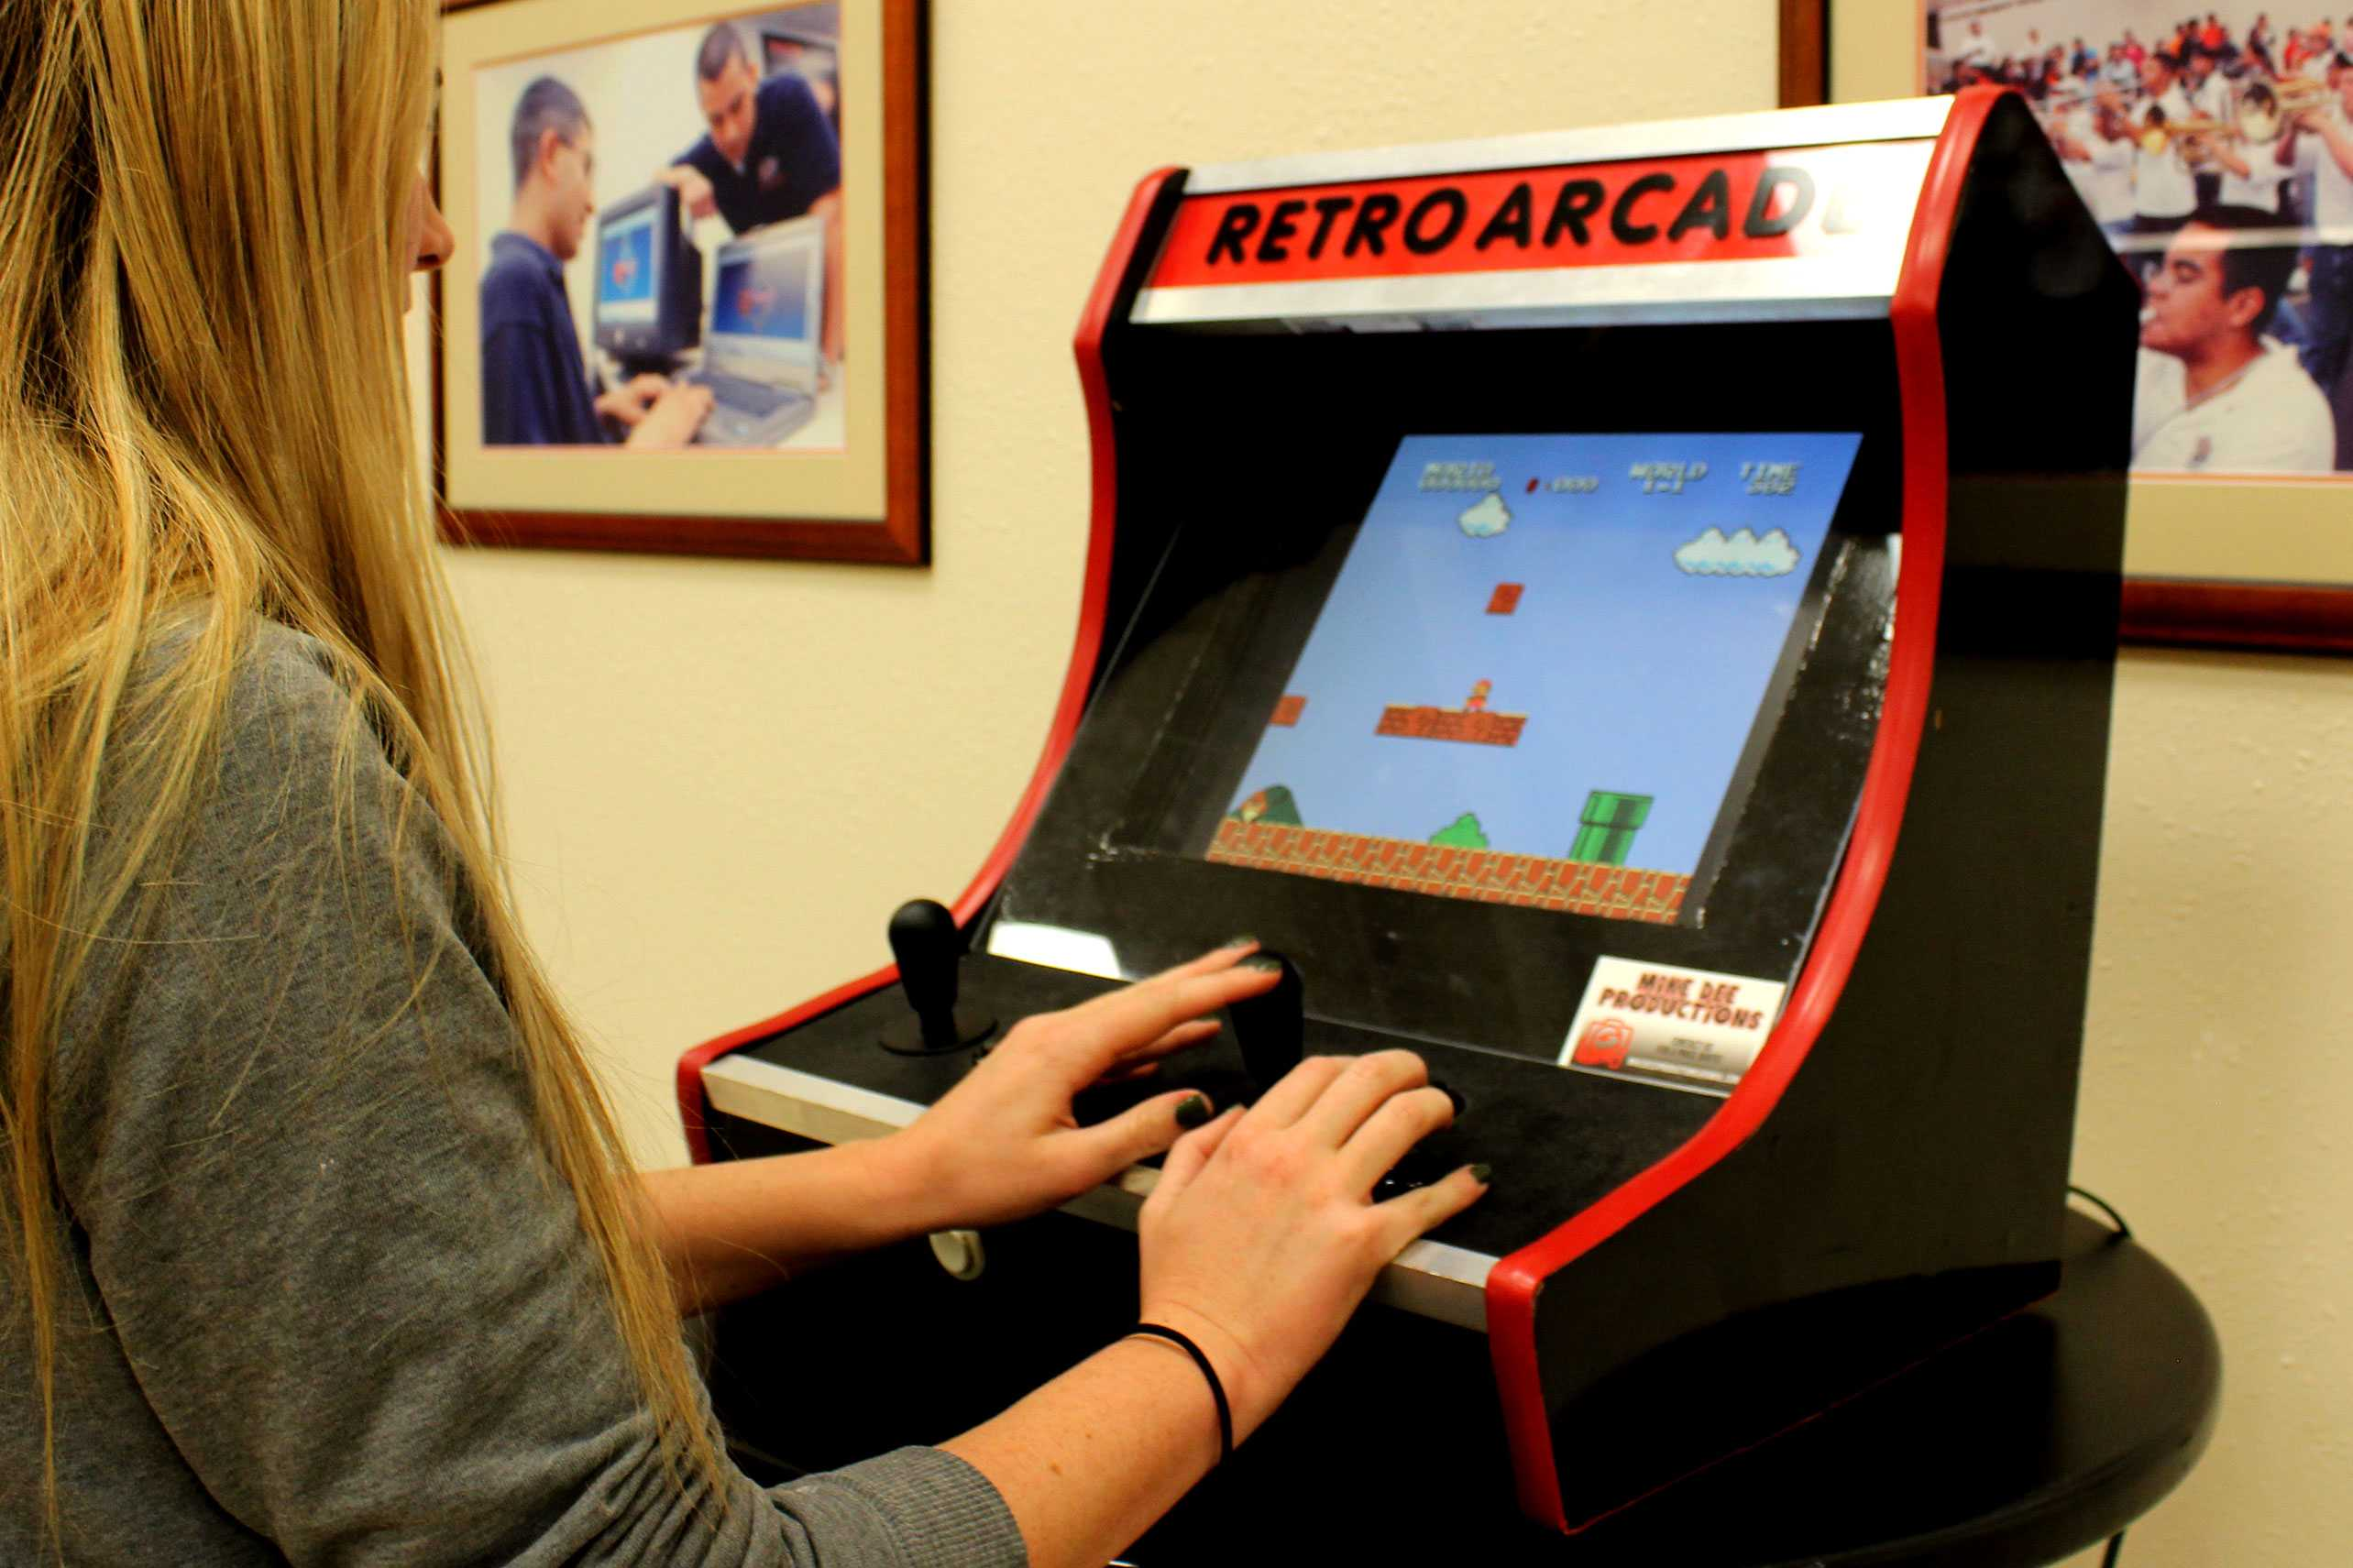 Students had the ability to play a number of retro arcade style games